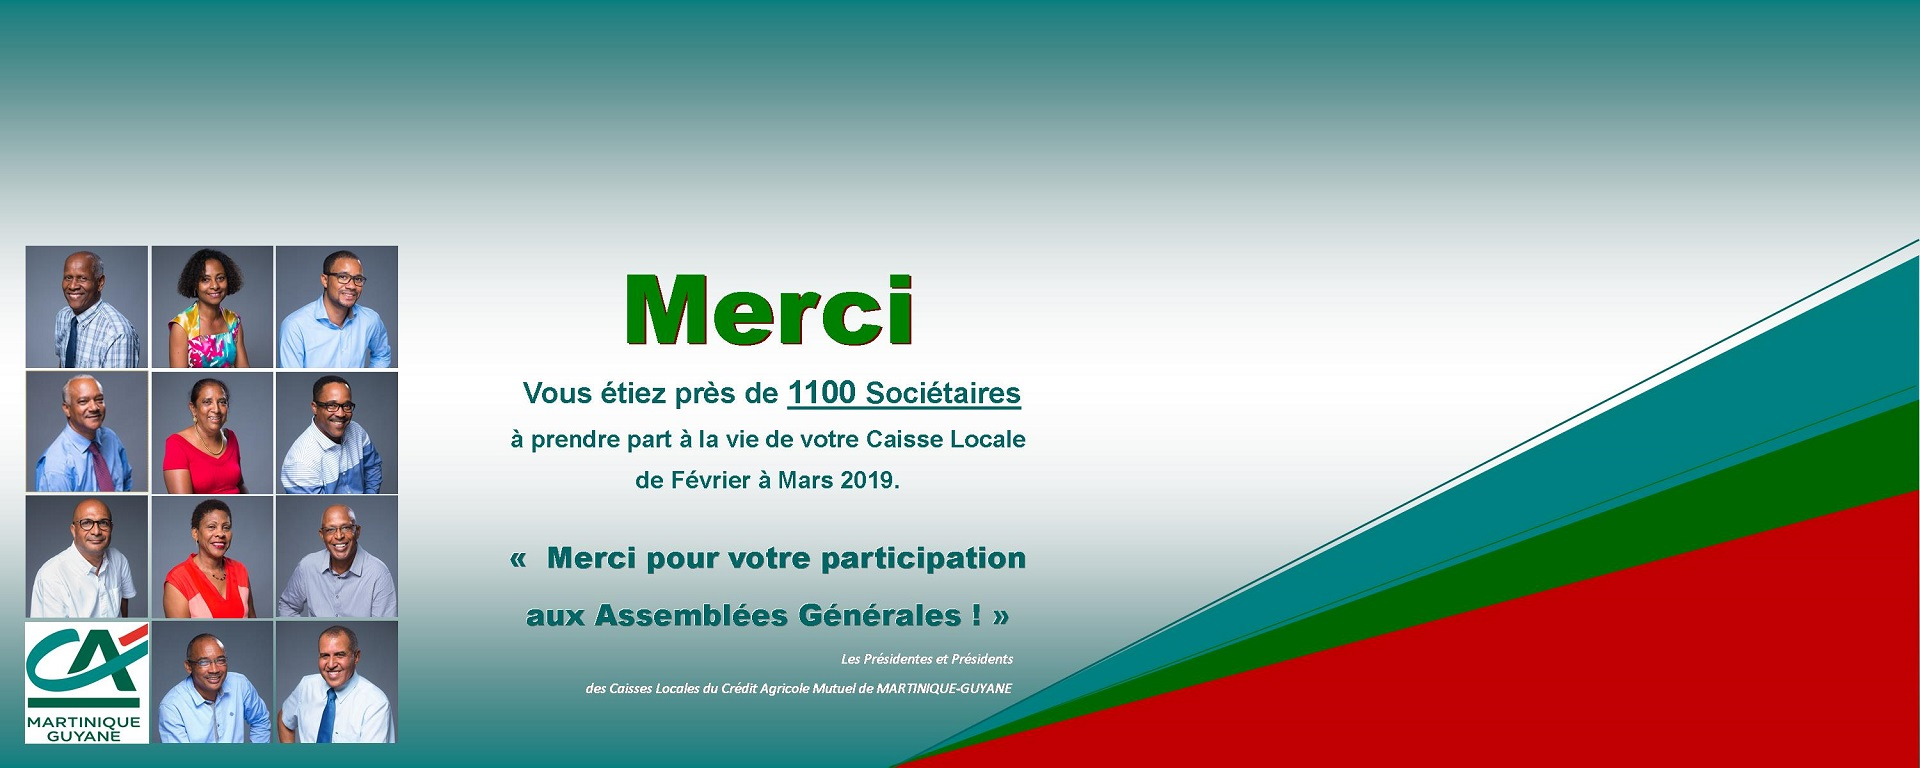 Credit Agricole Martinique Guyane Accueil Particuliers Credit